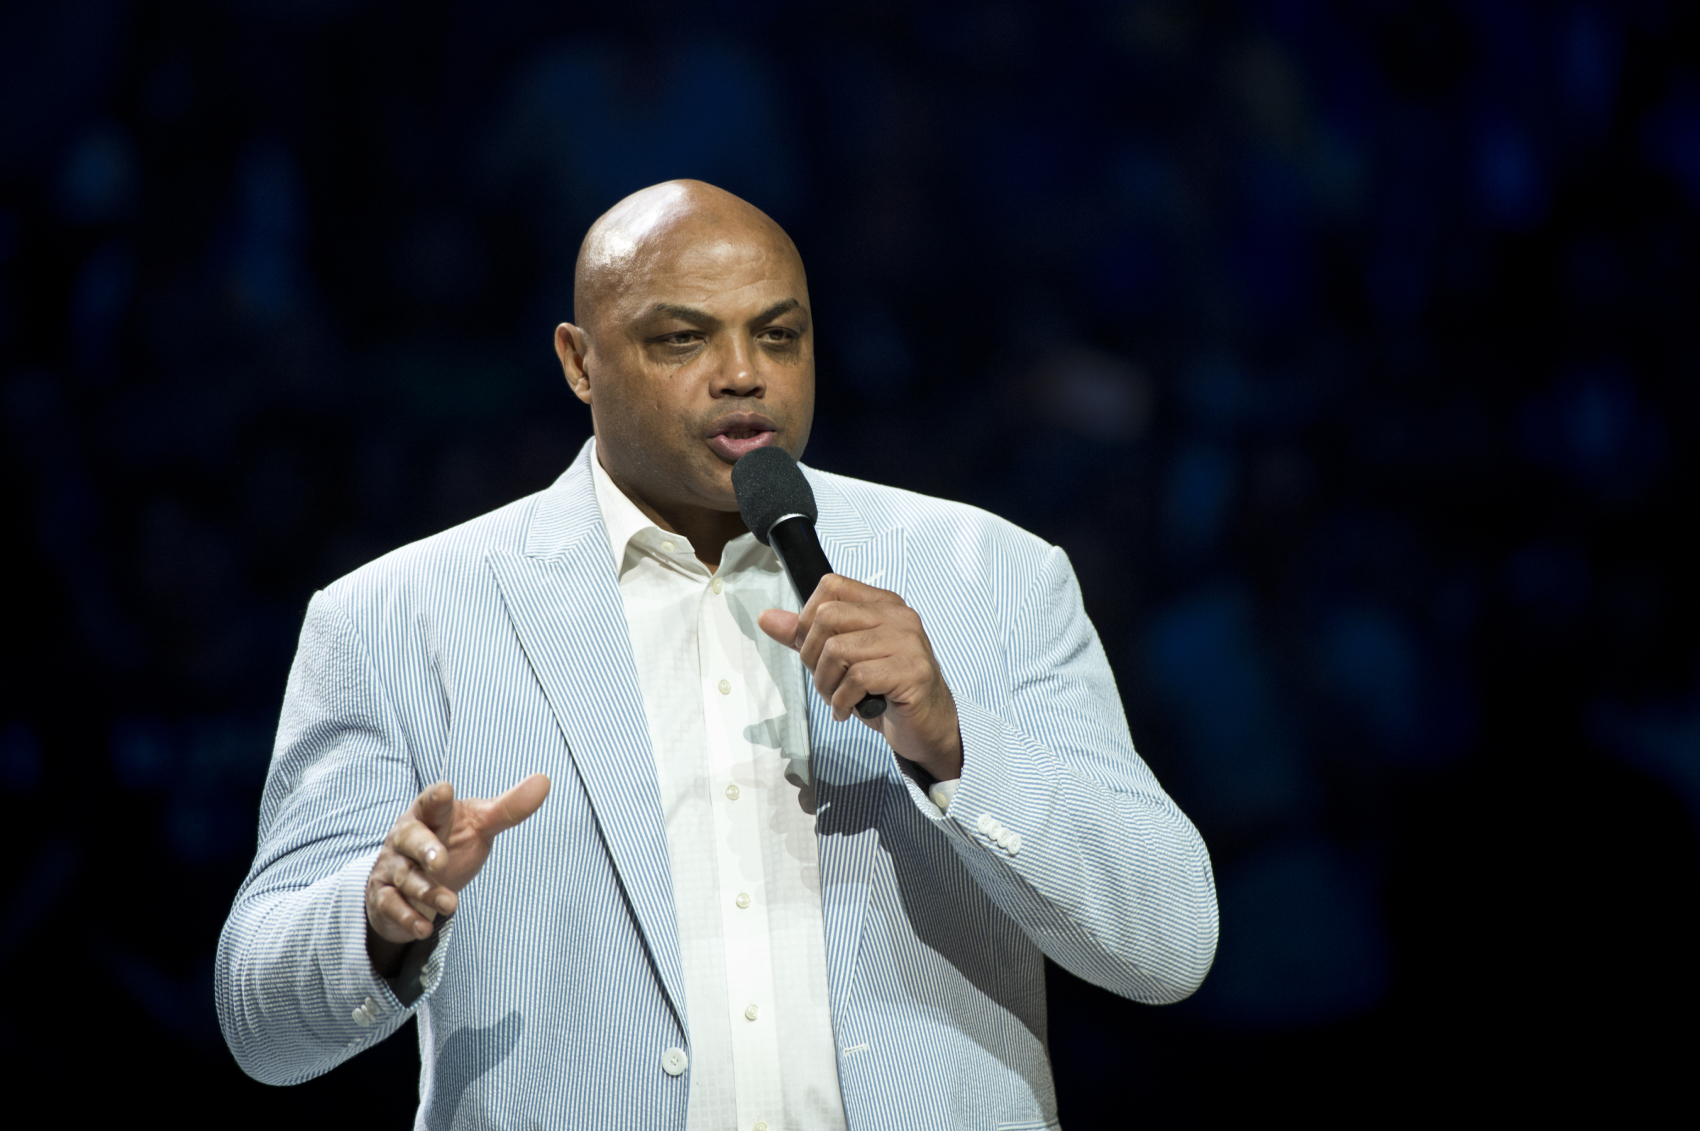 After taking a 2-0 lead, the LA Lakers now only lead the Heat 2-1 in the NBA Finals. Charles Barkley has since put them on notice.